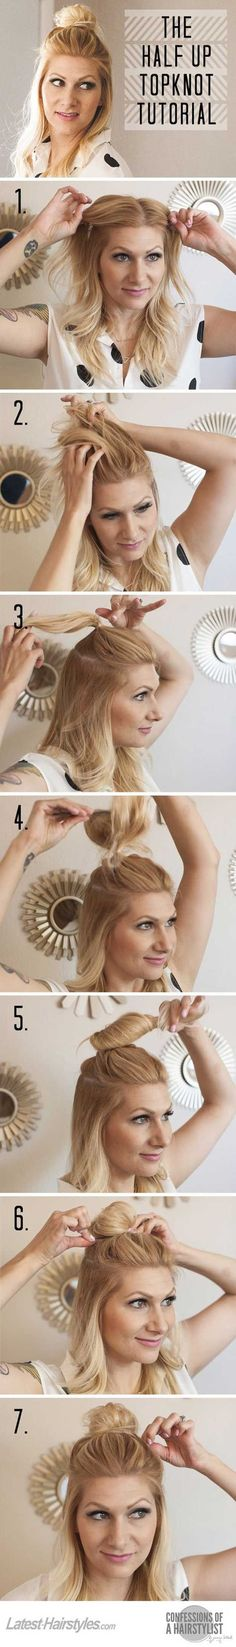 Amazing Half Up-Half Down Hairstyles For Long Hair - How To Do Hairstyle Trend Half Up Top Knot - Easy Step By Step Tutorials And Tips For Hair Styles And Hair Ideas For Prom, For The Bridesmaid, For Homecoming, Wedding, And Bride. Try An Updo Or A Half U